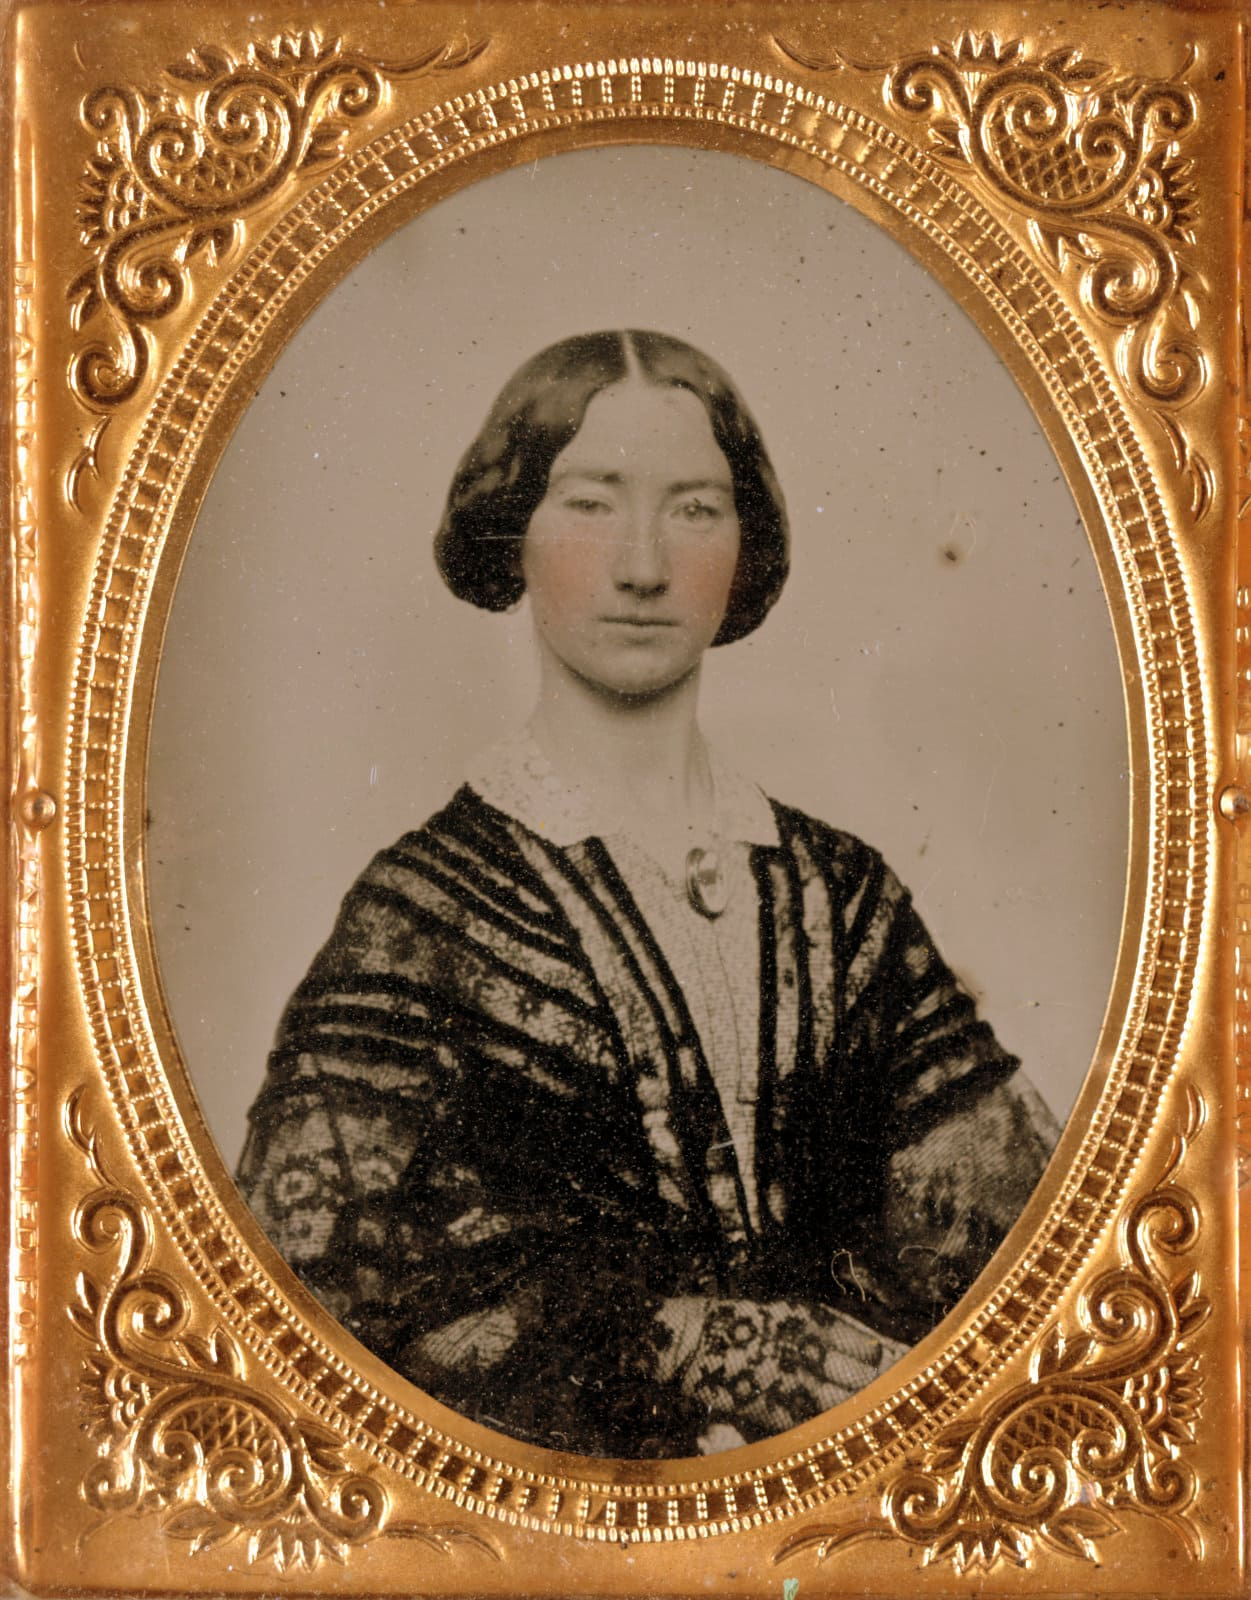 Formal antique portrait of an unidentified woman during the Civil War era (1860s)